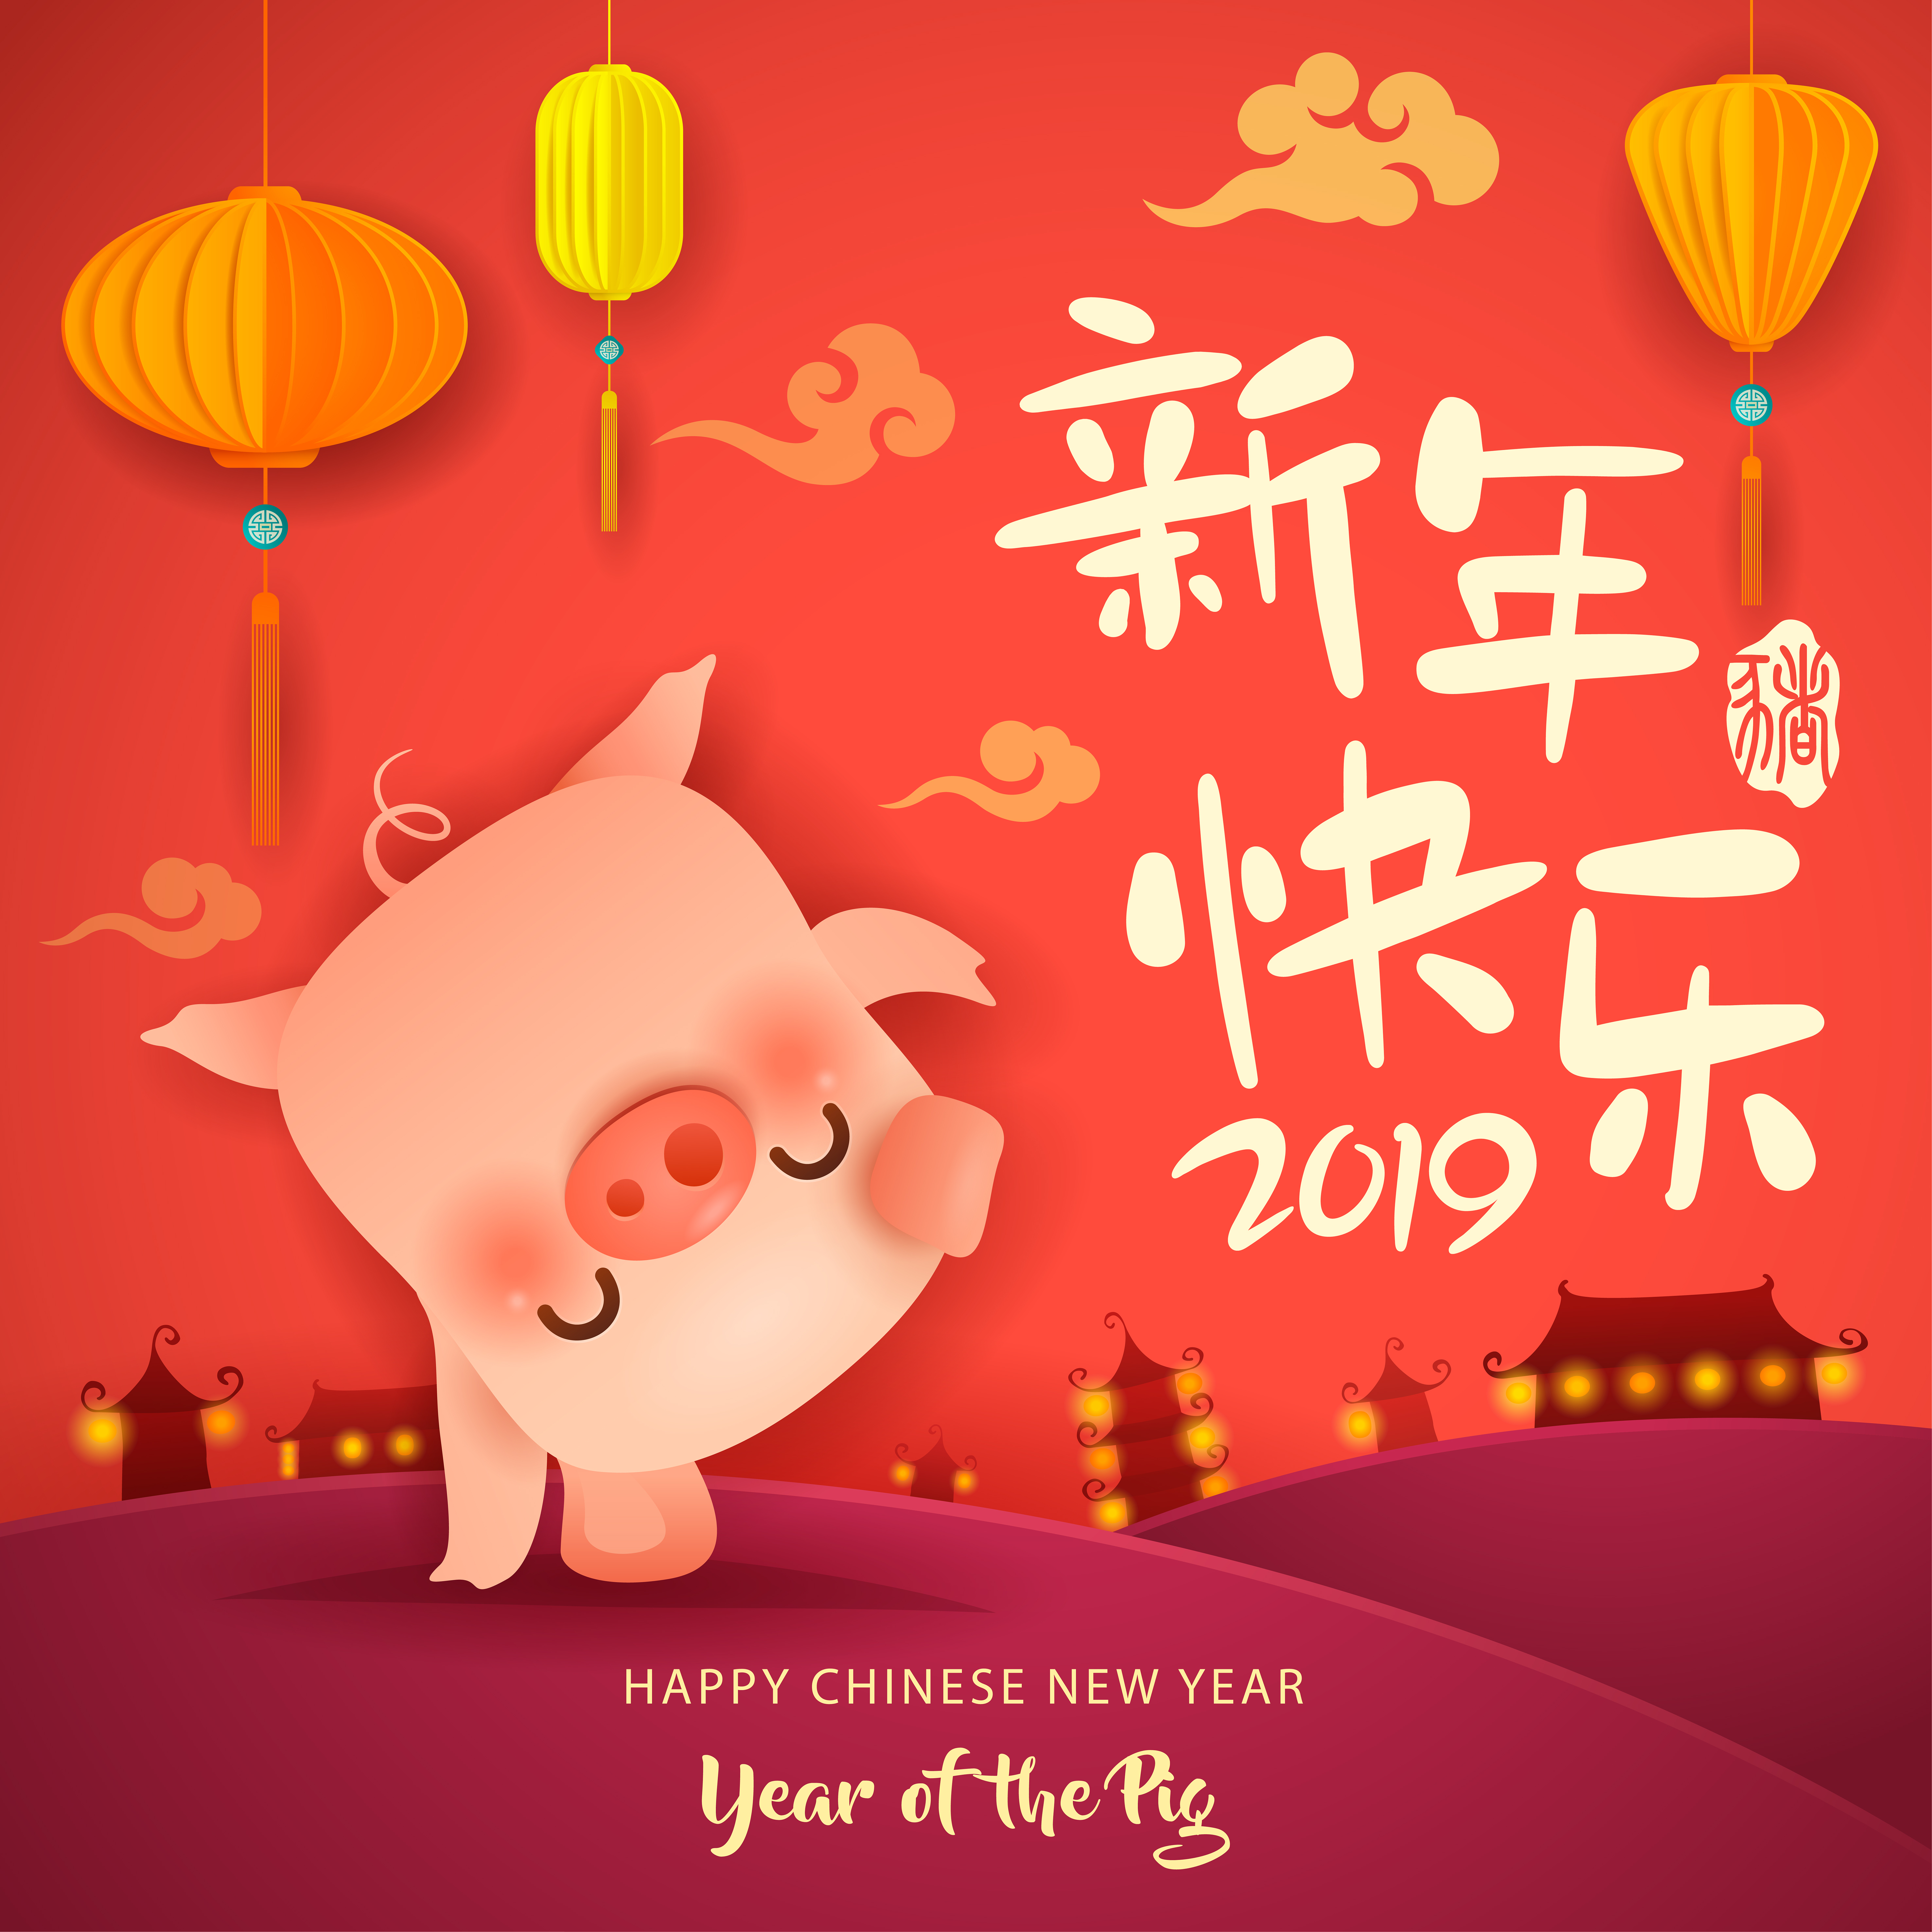 Chinese New Year The year of the pig - Download Free ...